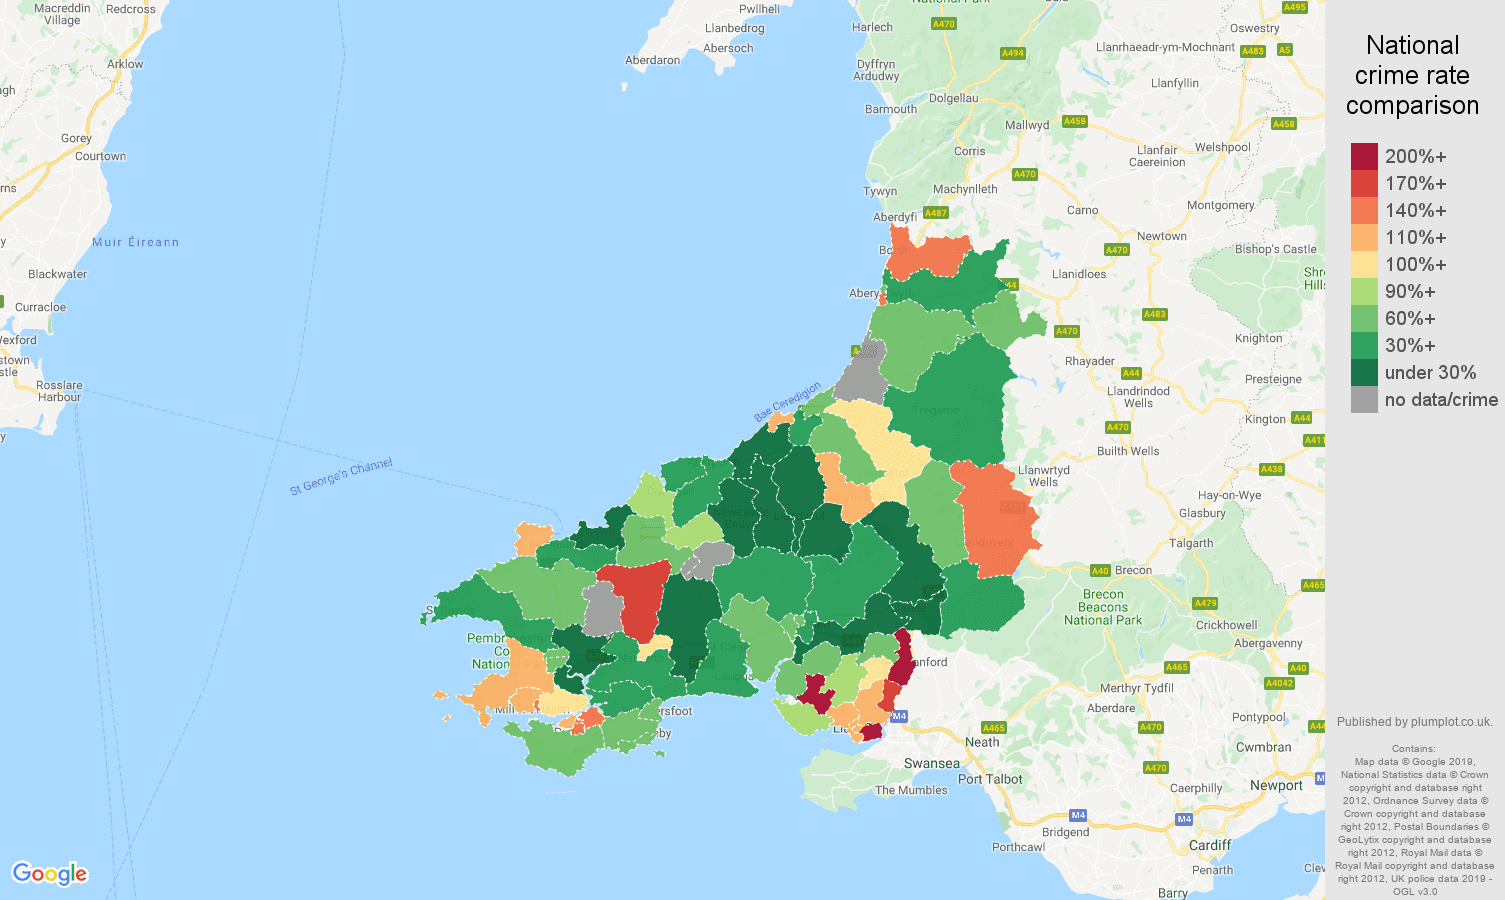 Dyfed other crime rate comparison map